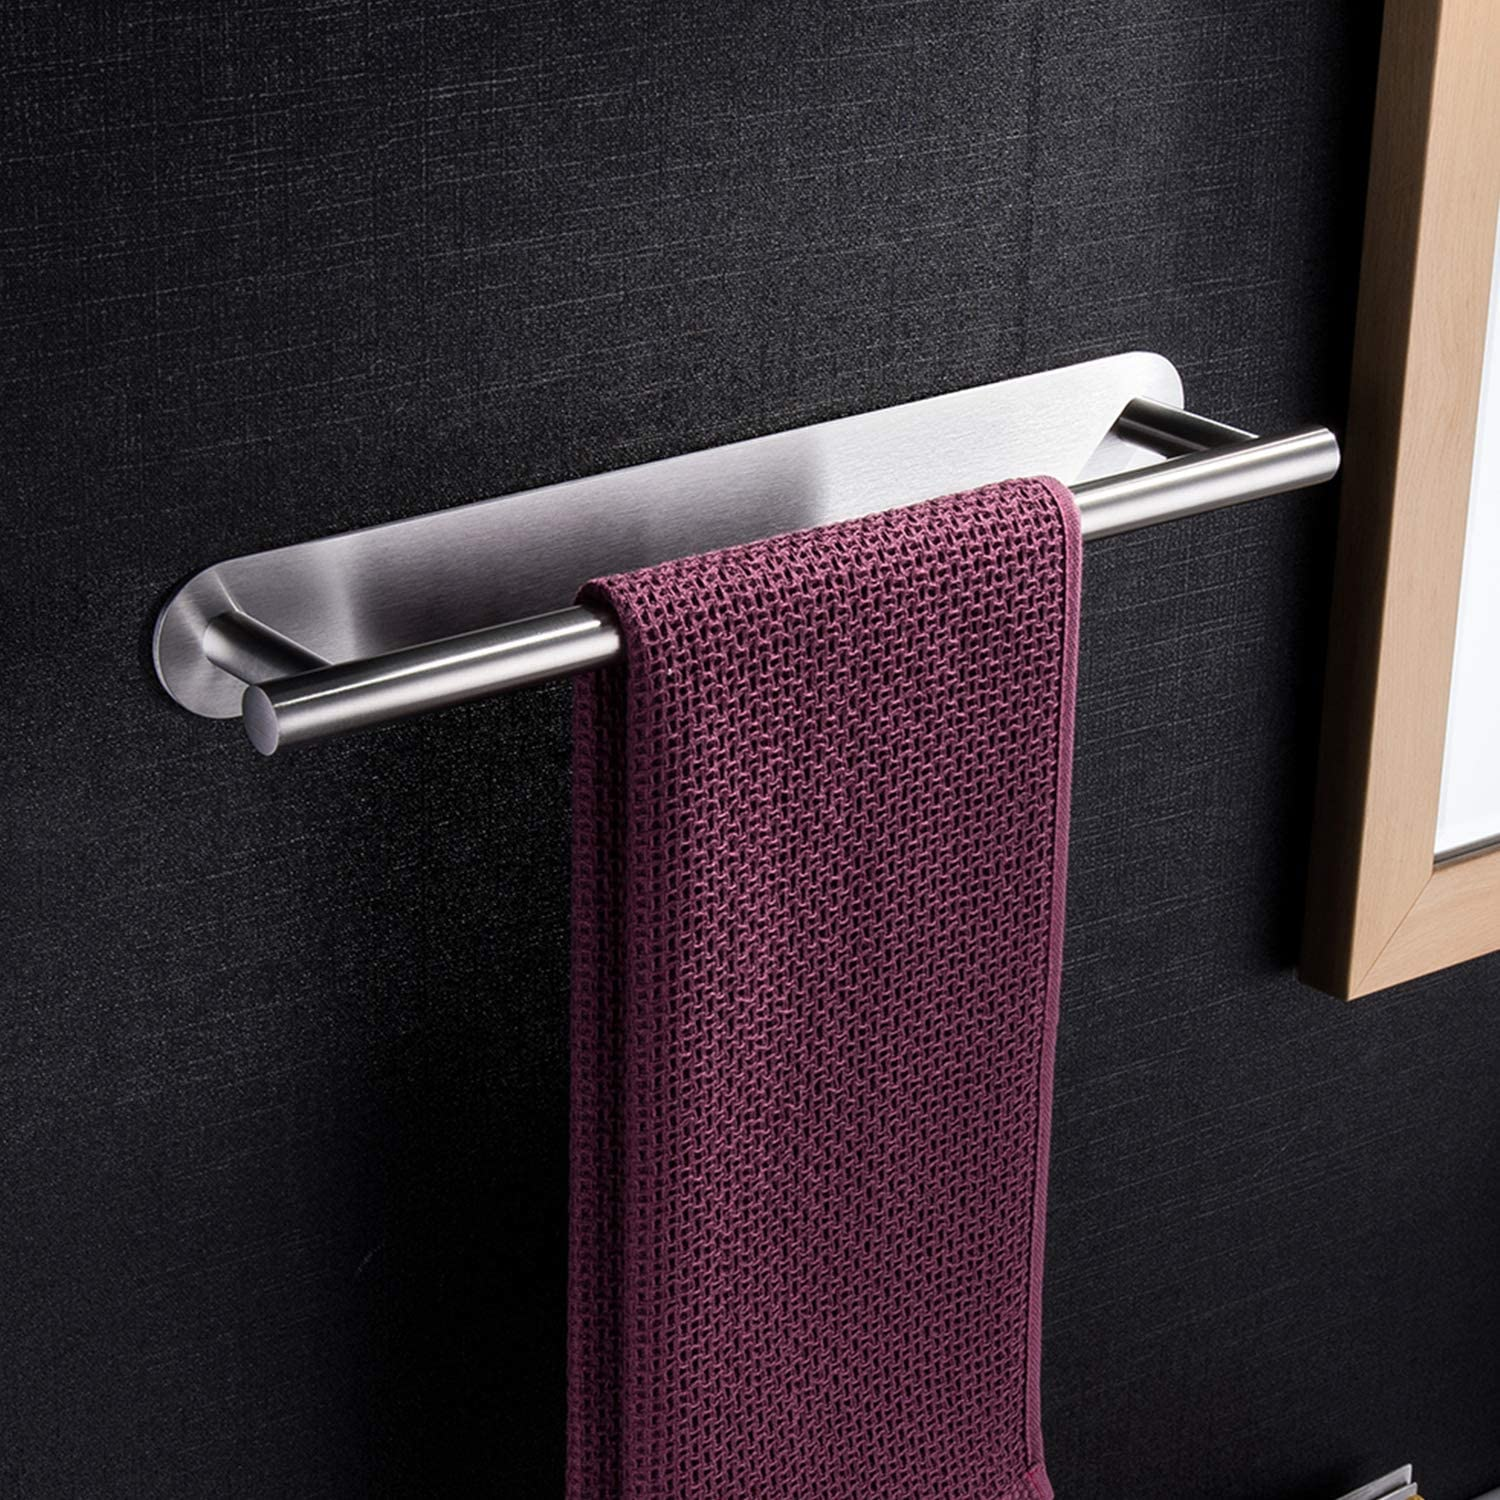 YIGII Towel Bar Self Adhesive - 3M Bathroom Stick Towel Rack/Holder 16-Inch no Drilling, Stainless Steel SUS 304